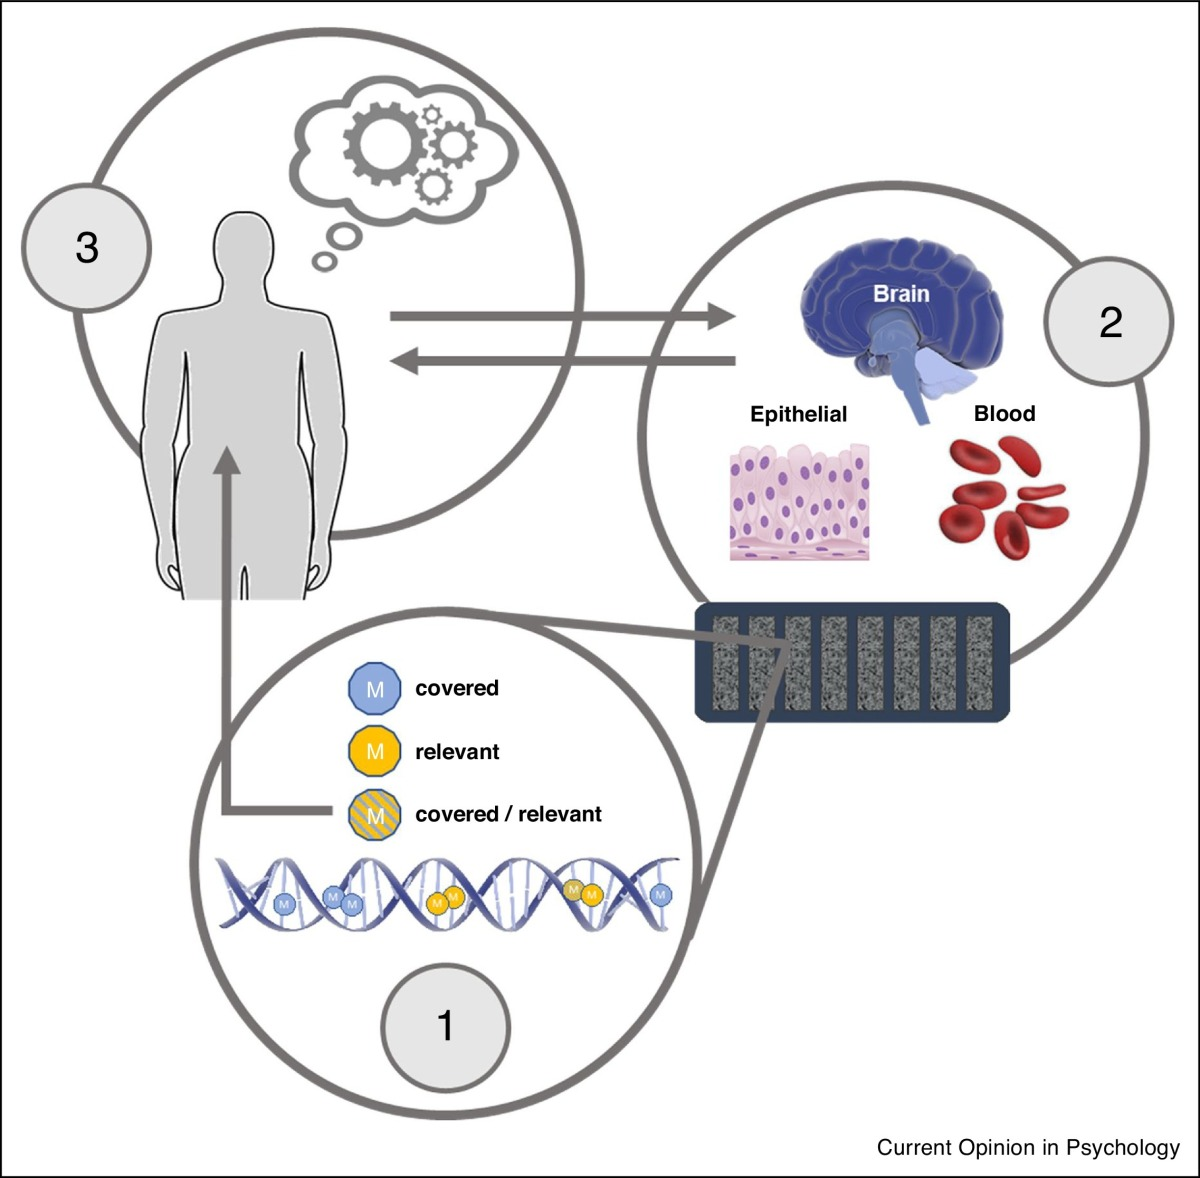 Hidden hypotheses of epigenetic studies